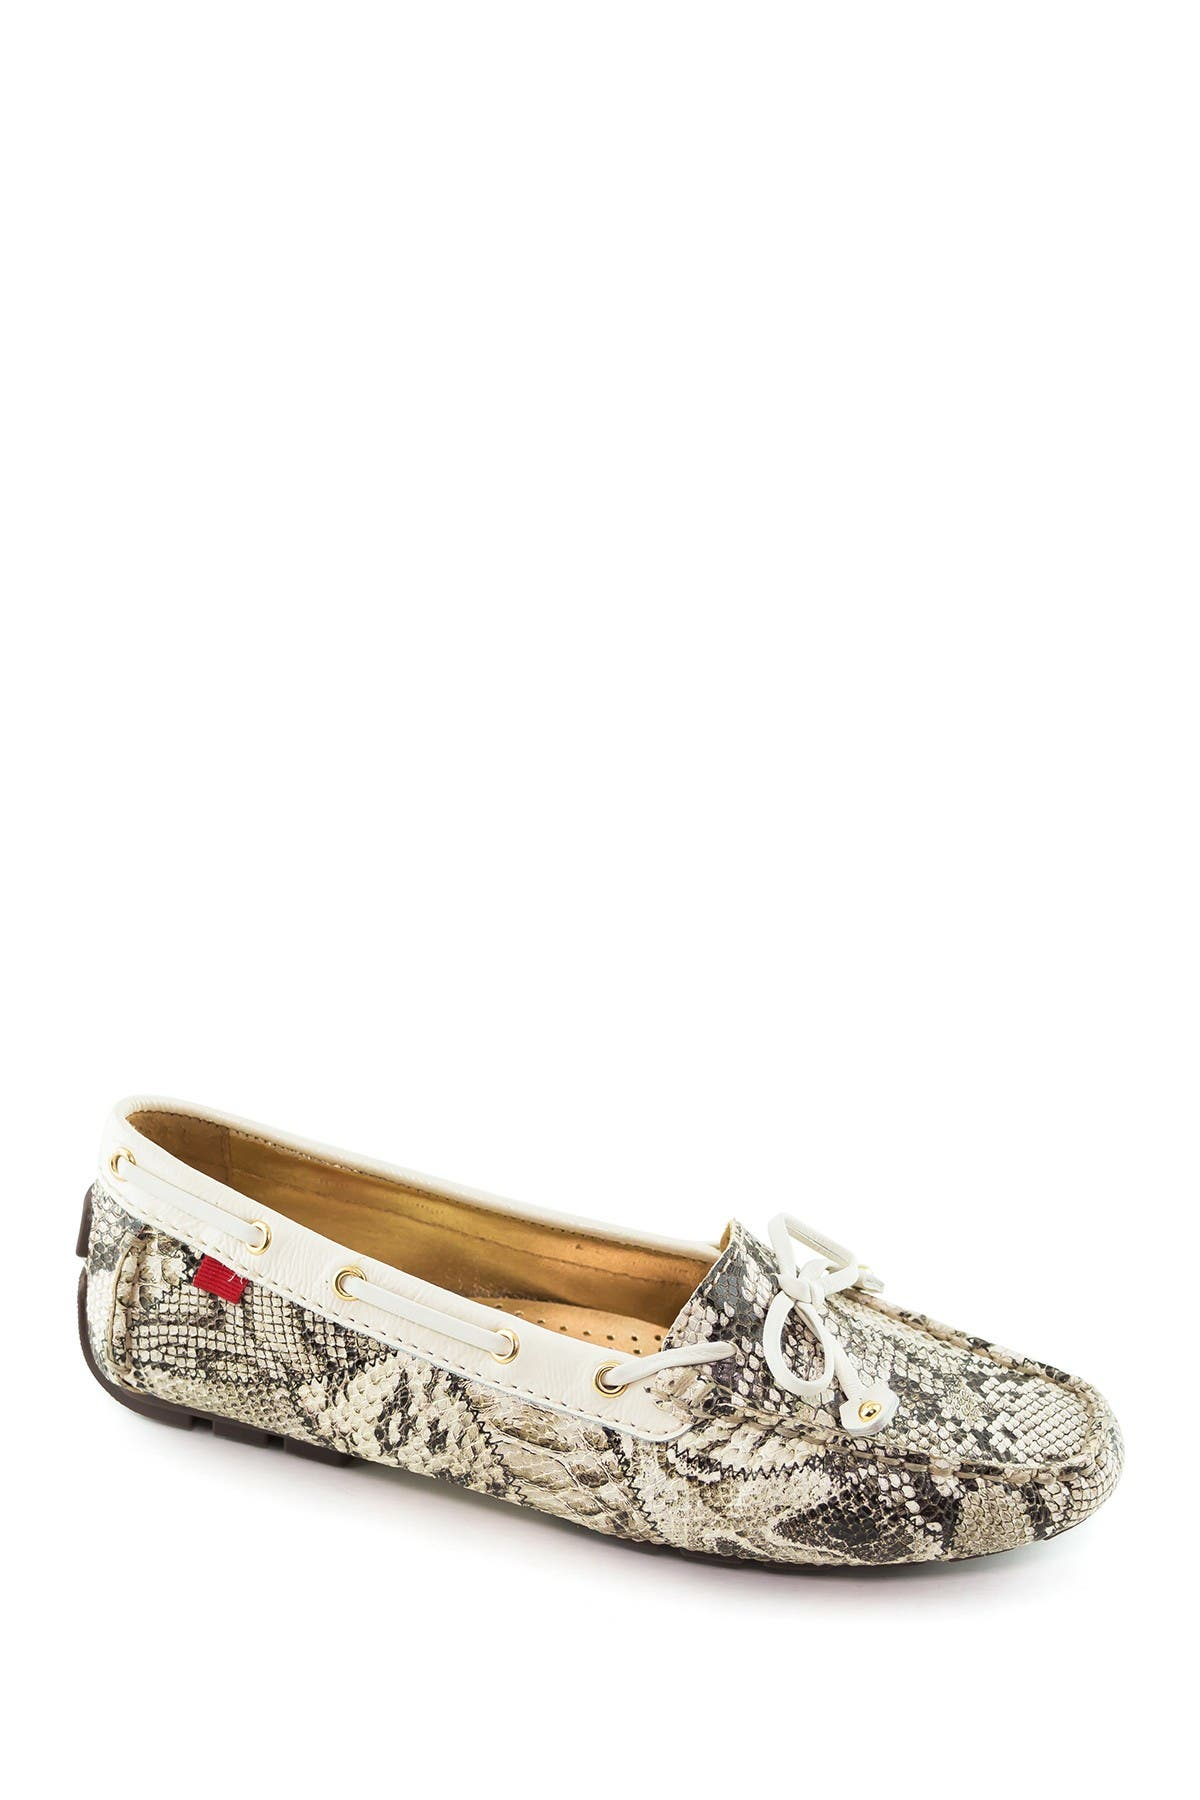 Image of Marc Joseph New York Cypress Hill Loafer